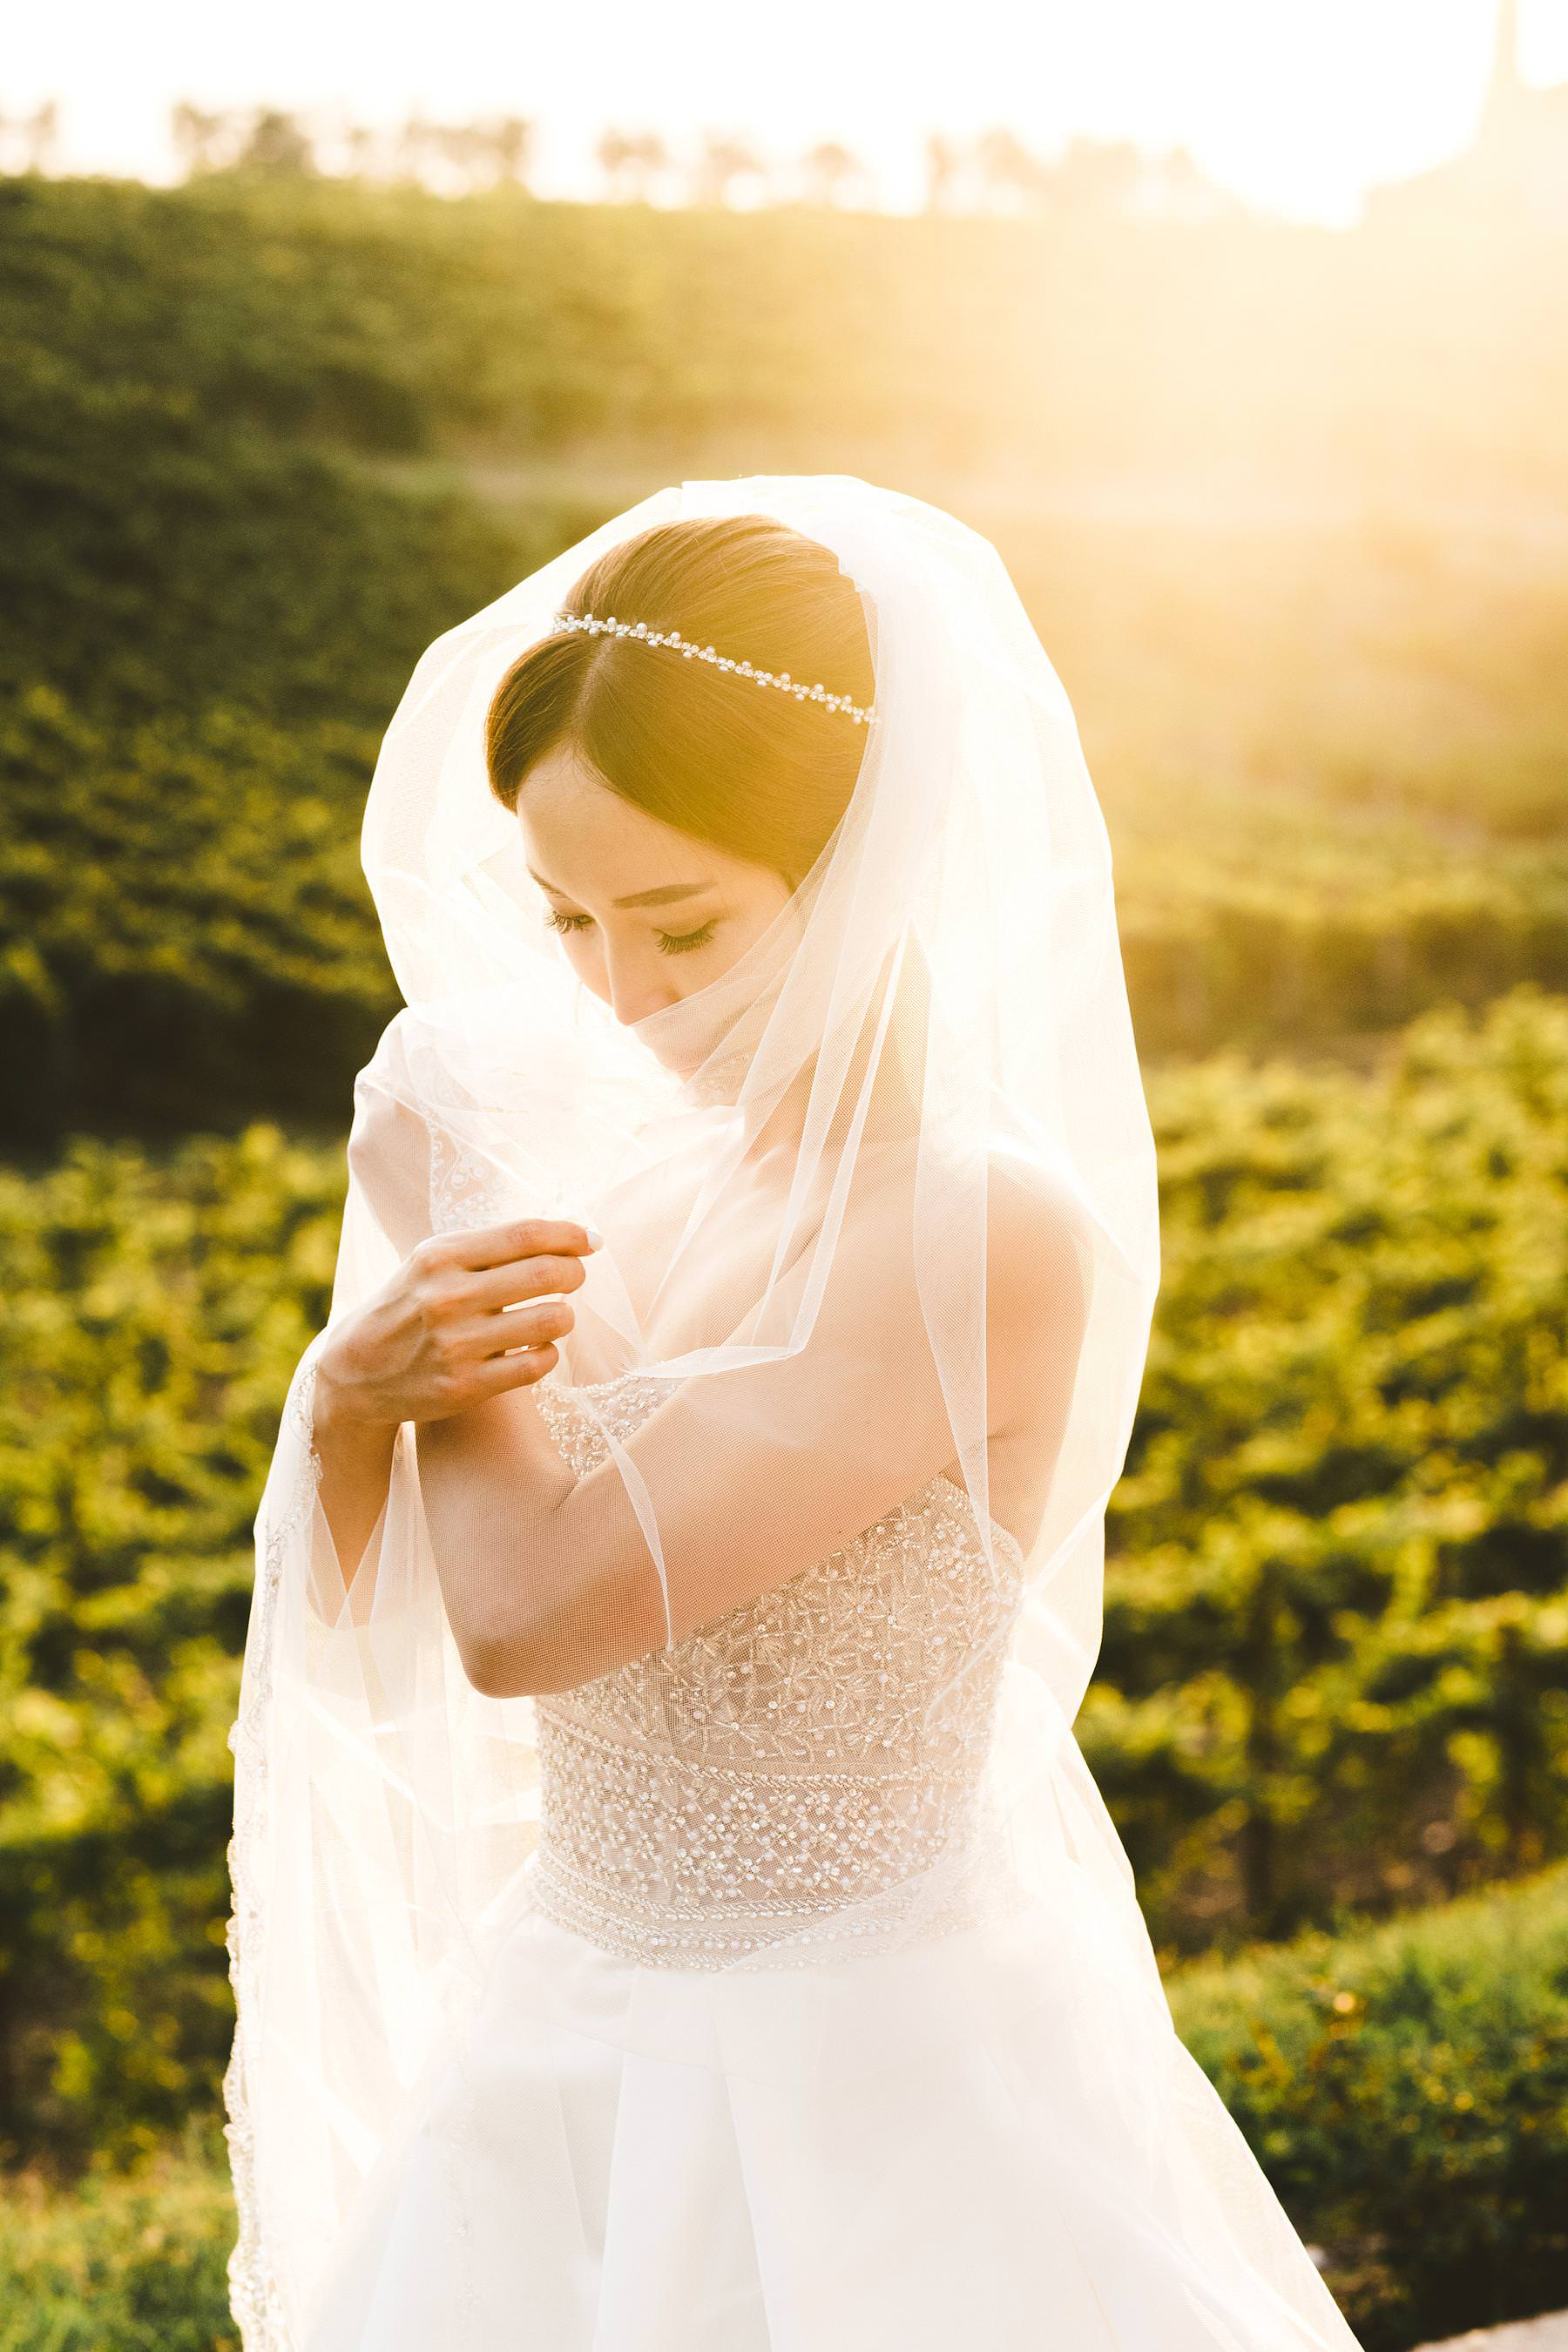 Lovely bridal portrait around the vineyard surrounding Castello Il Palagio a typical scenery of Chianti in Tuscany. Bride in Maggie Sottero elegant gown